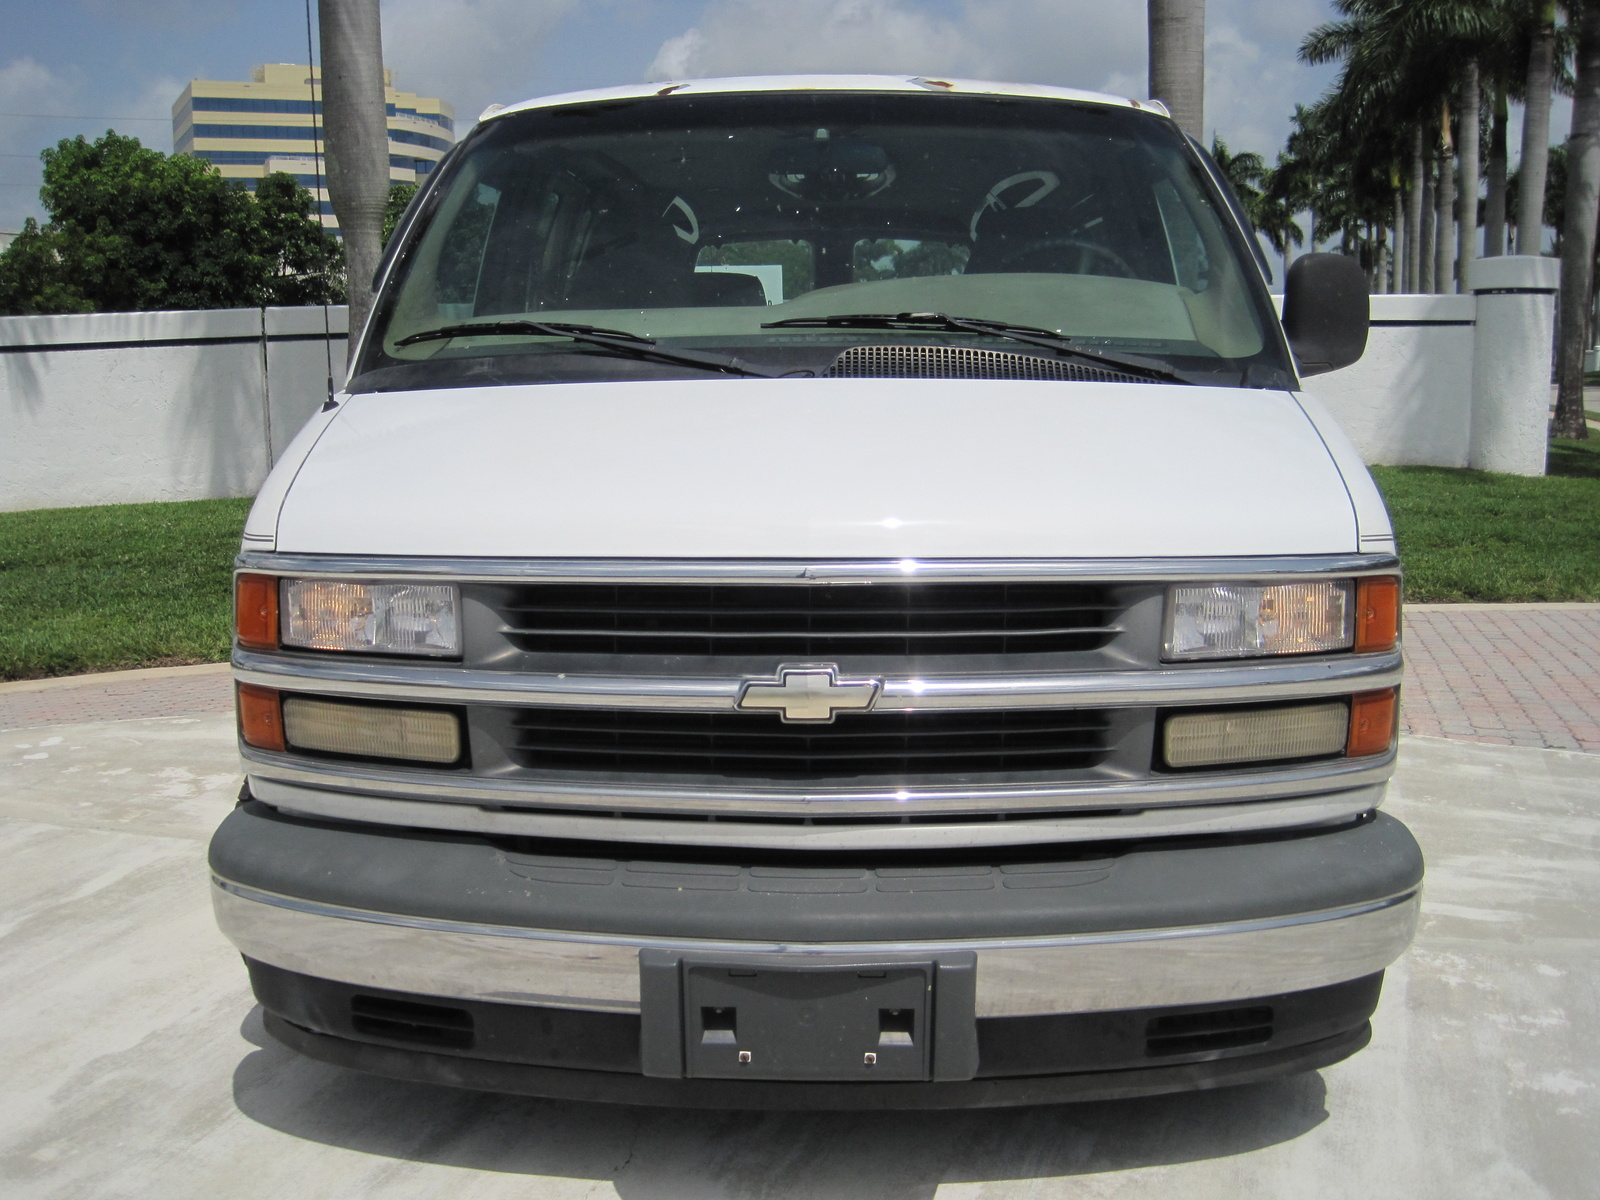 Chevrolet Express 2000 photo - 5